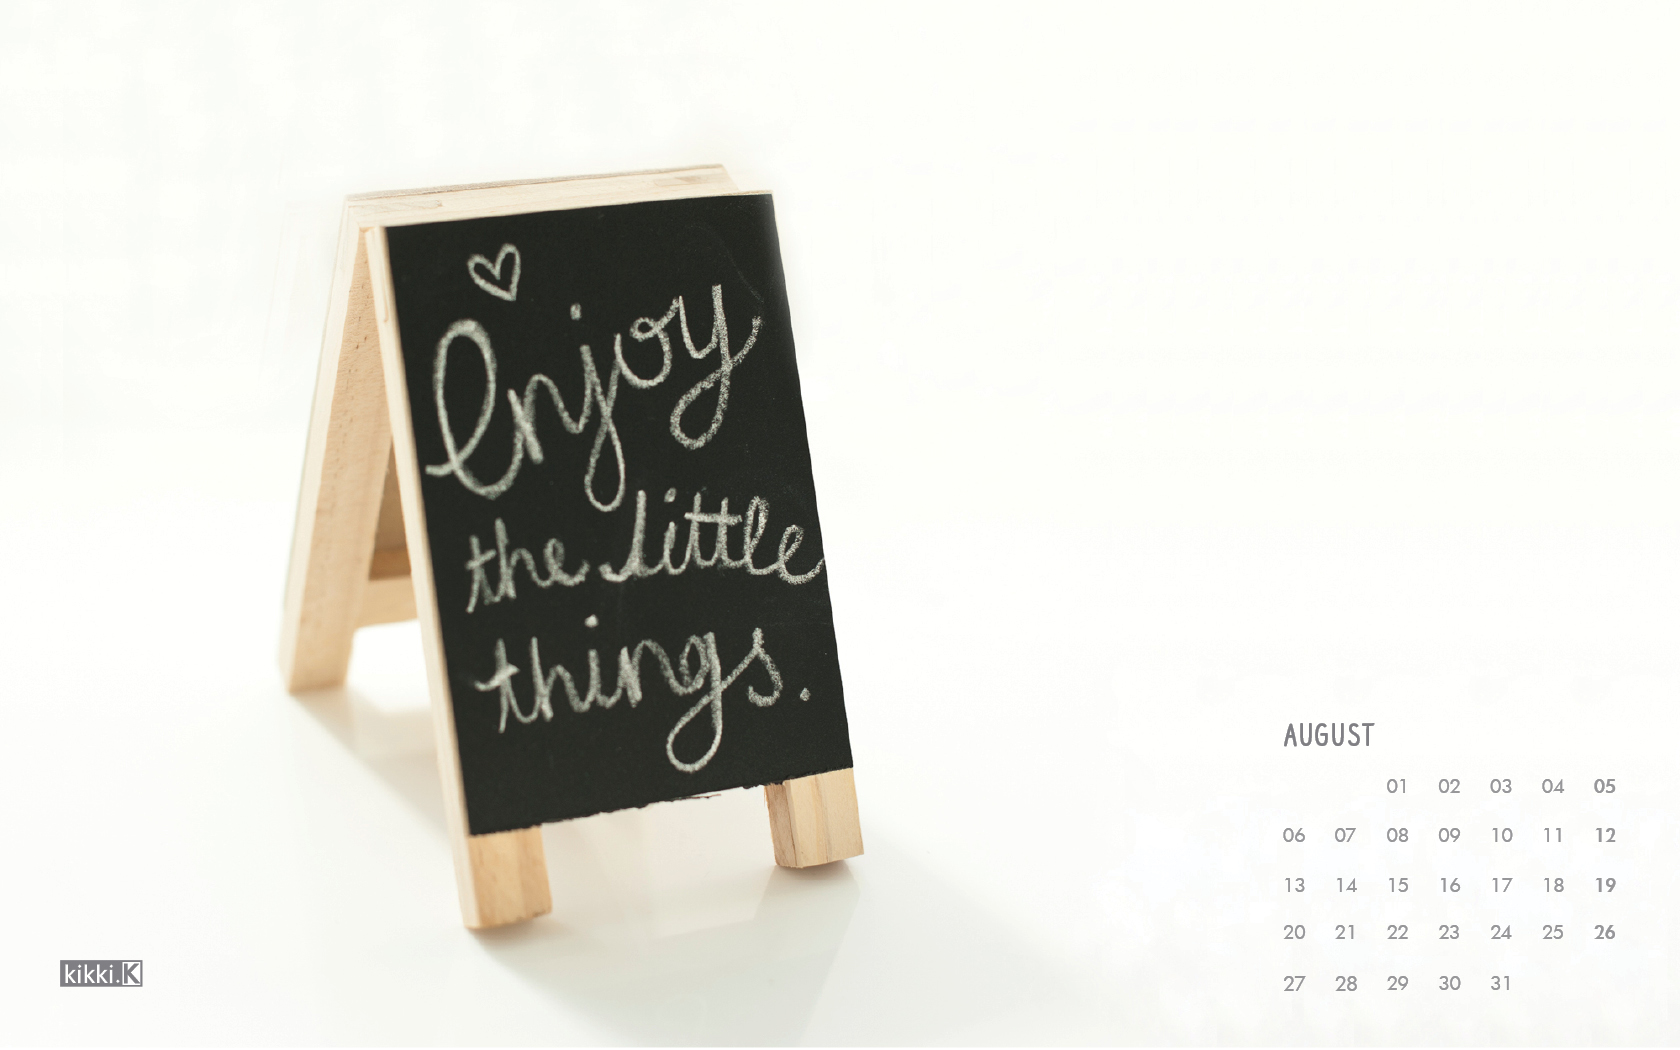 Enjoy-the-little-things-in-August-with-our-freeour-desktop-calendar-x-wallpaper-wp5206211